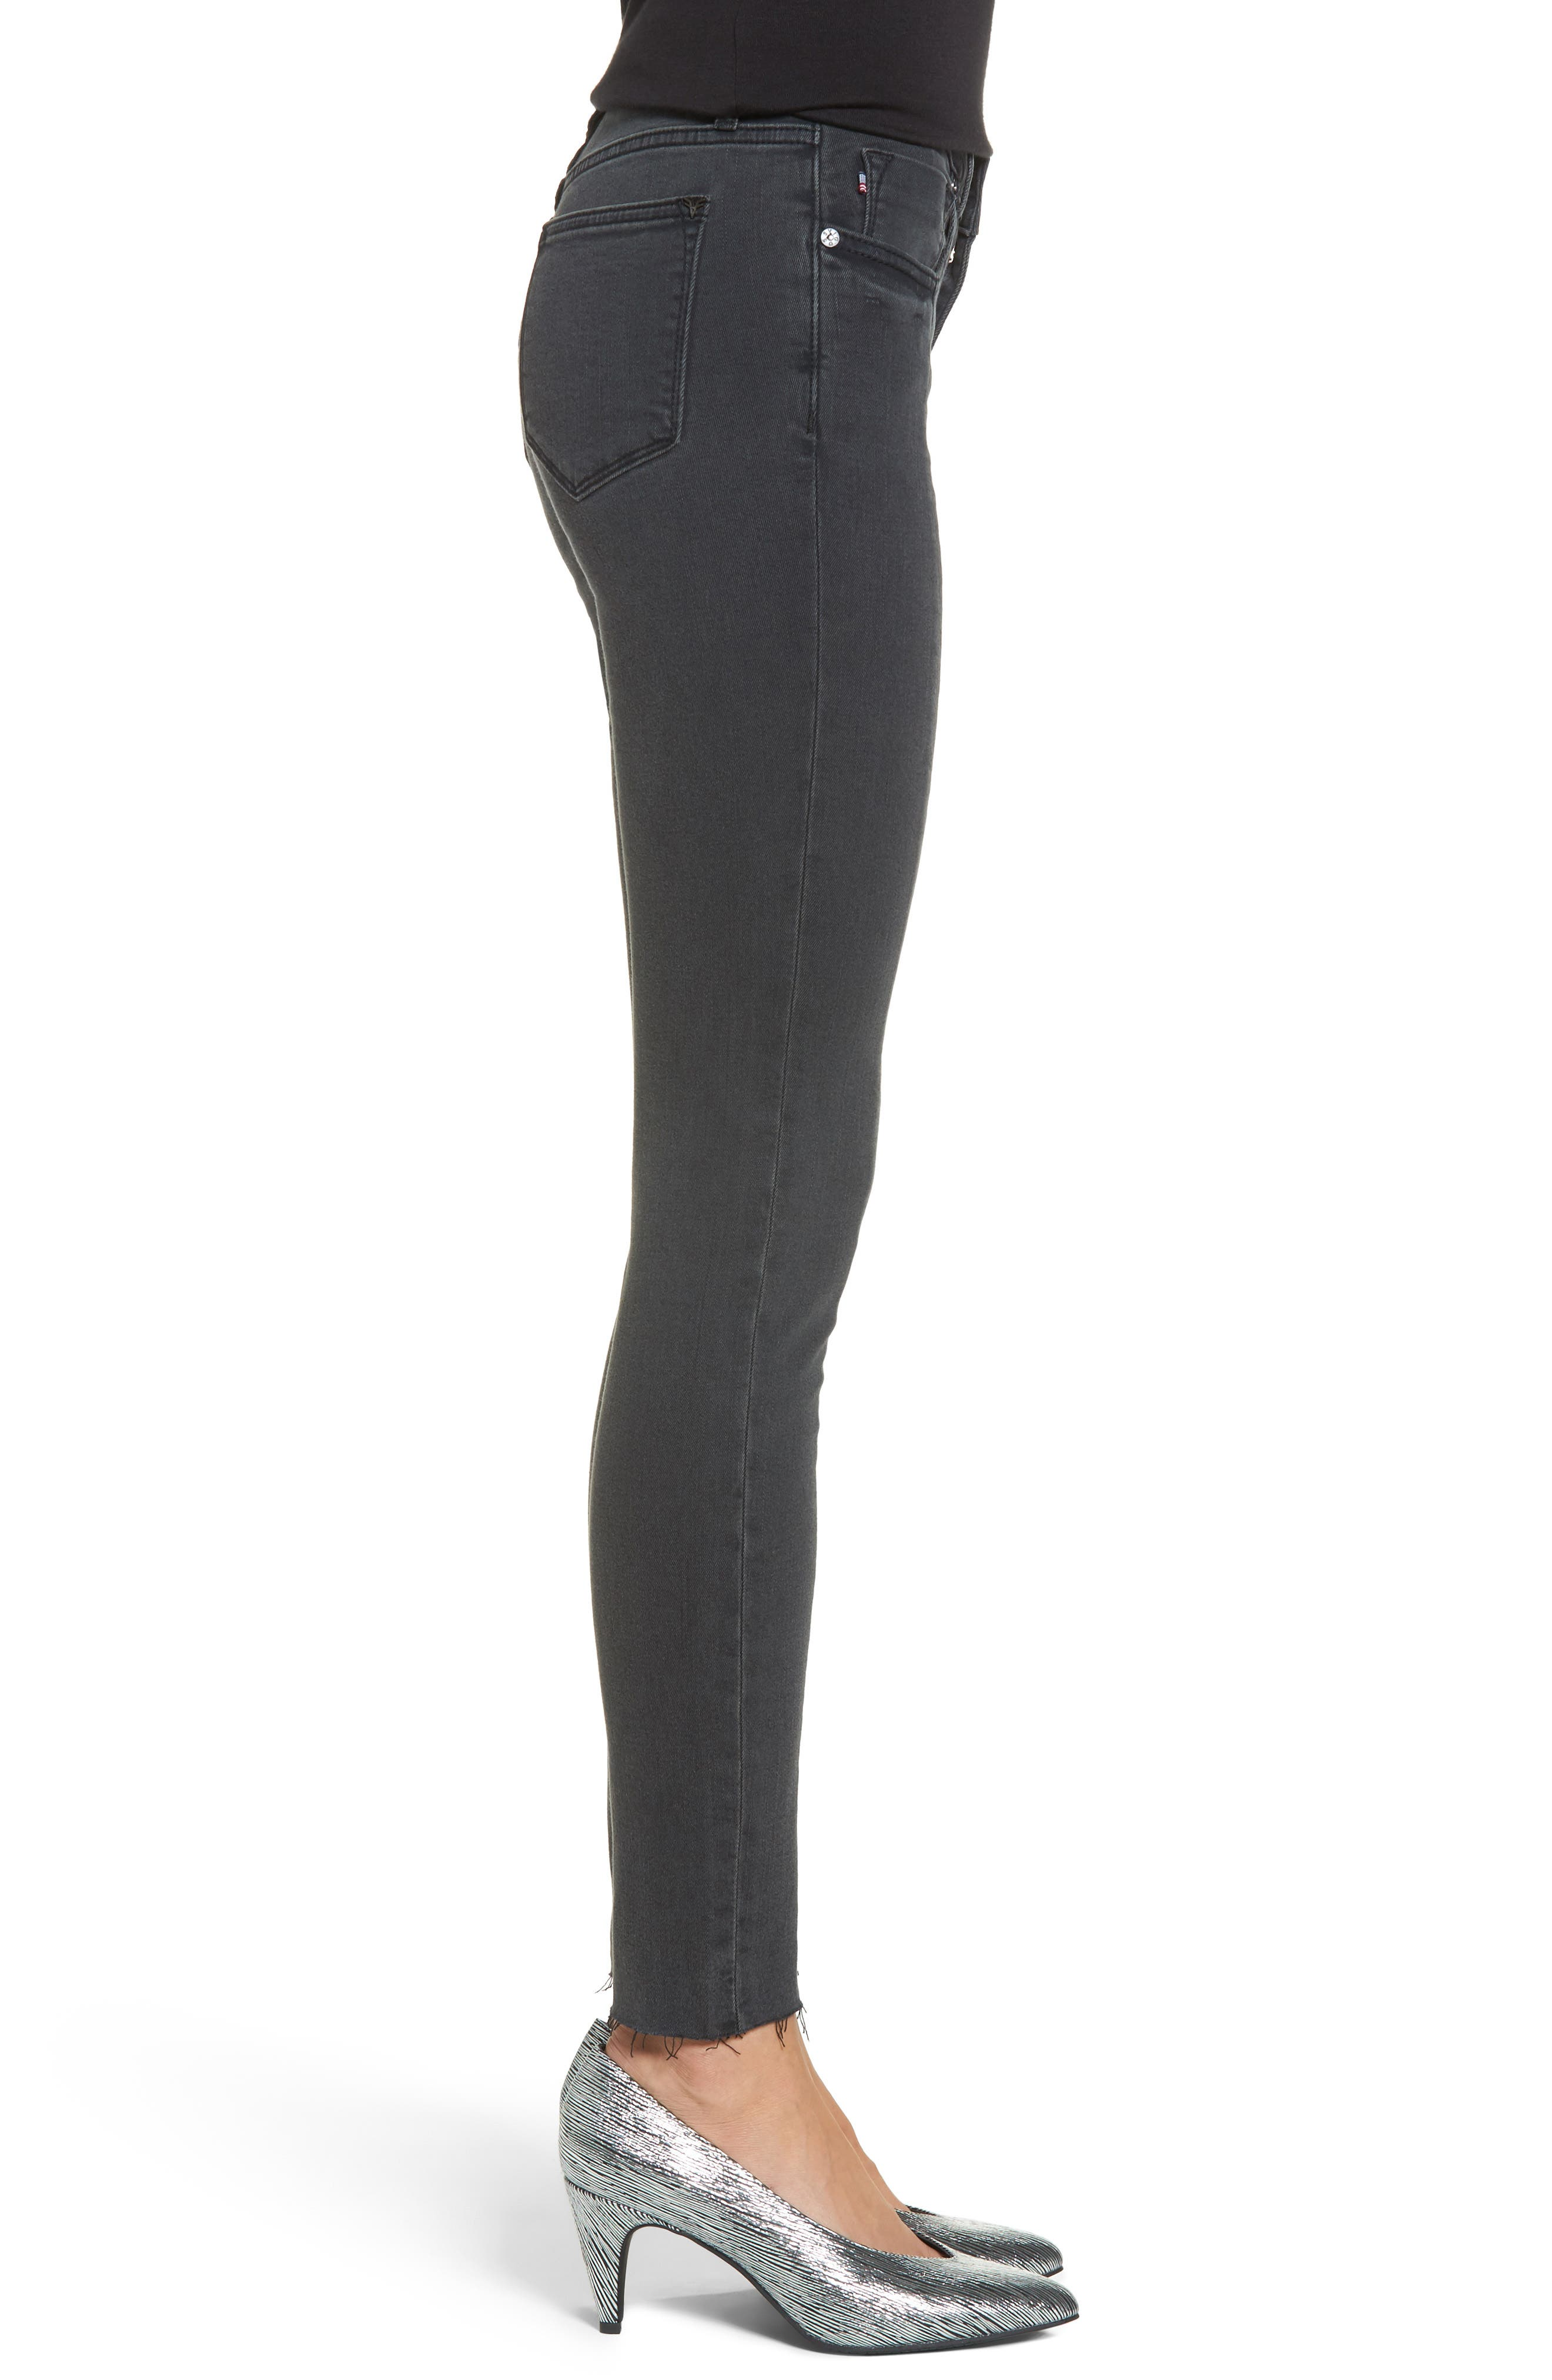 Jagger Front Seam Skinny Jeans,                             Alternate thumbnail 3, color,                             006